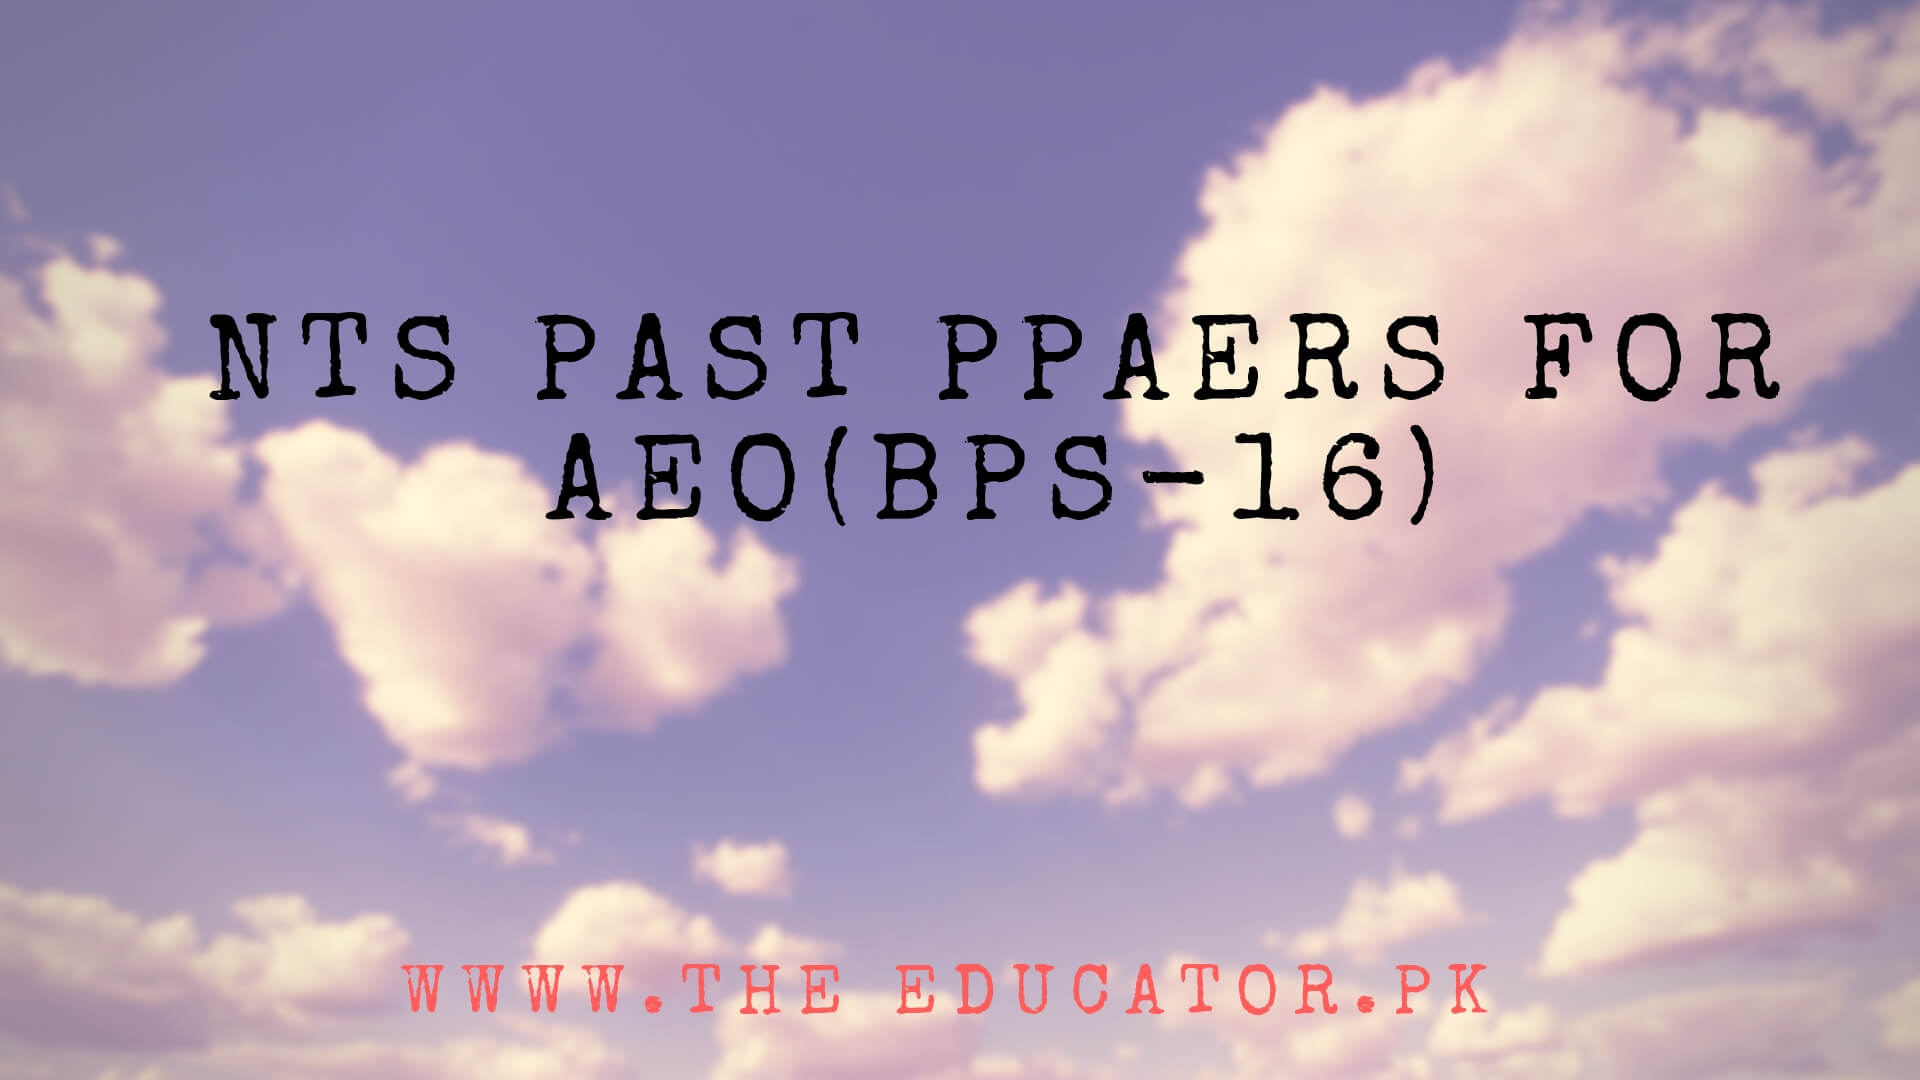 nts past papers solved